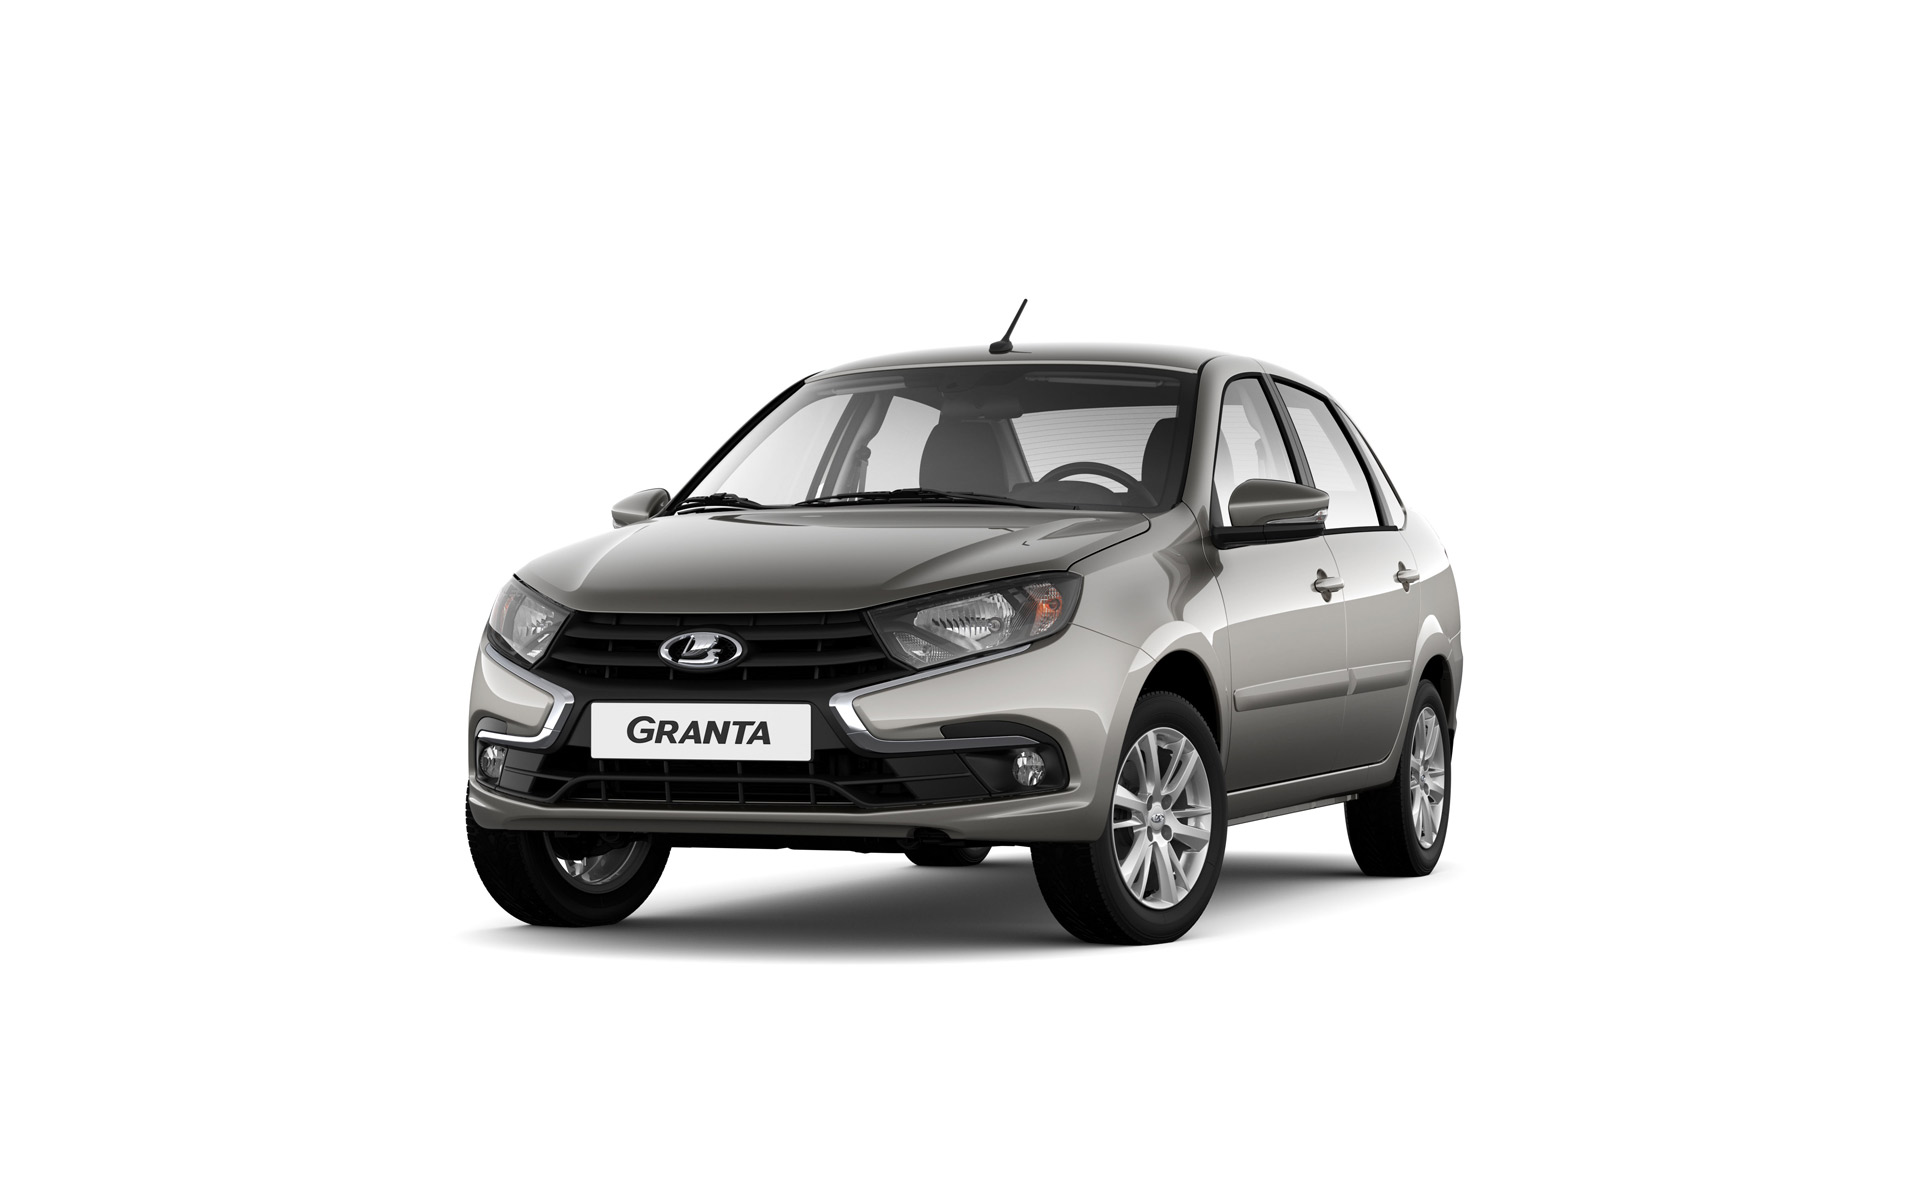 Lada Granta engine: specifications and reviews